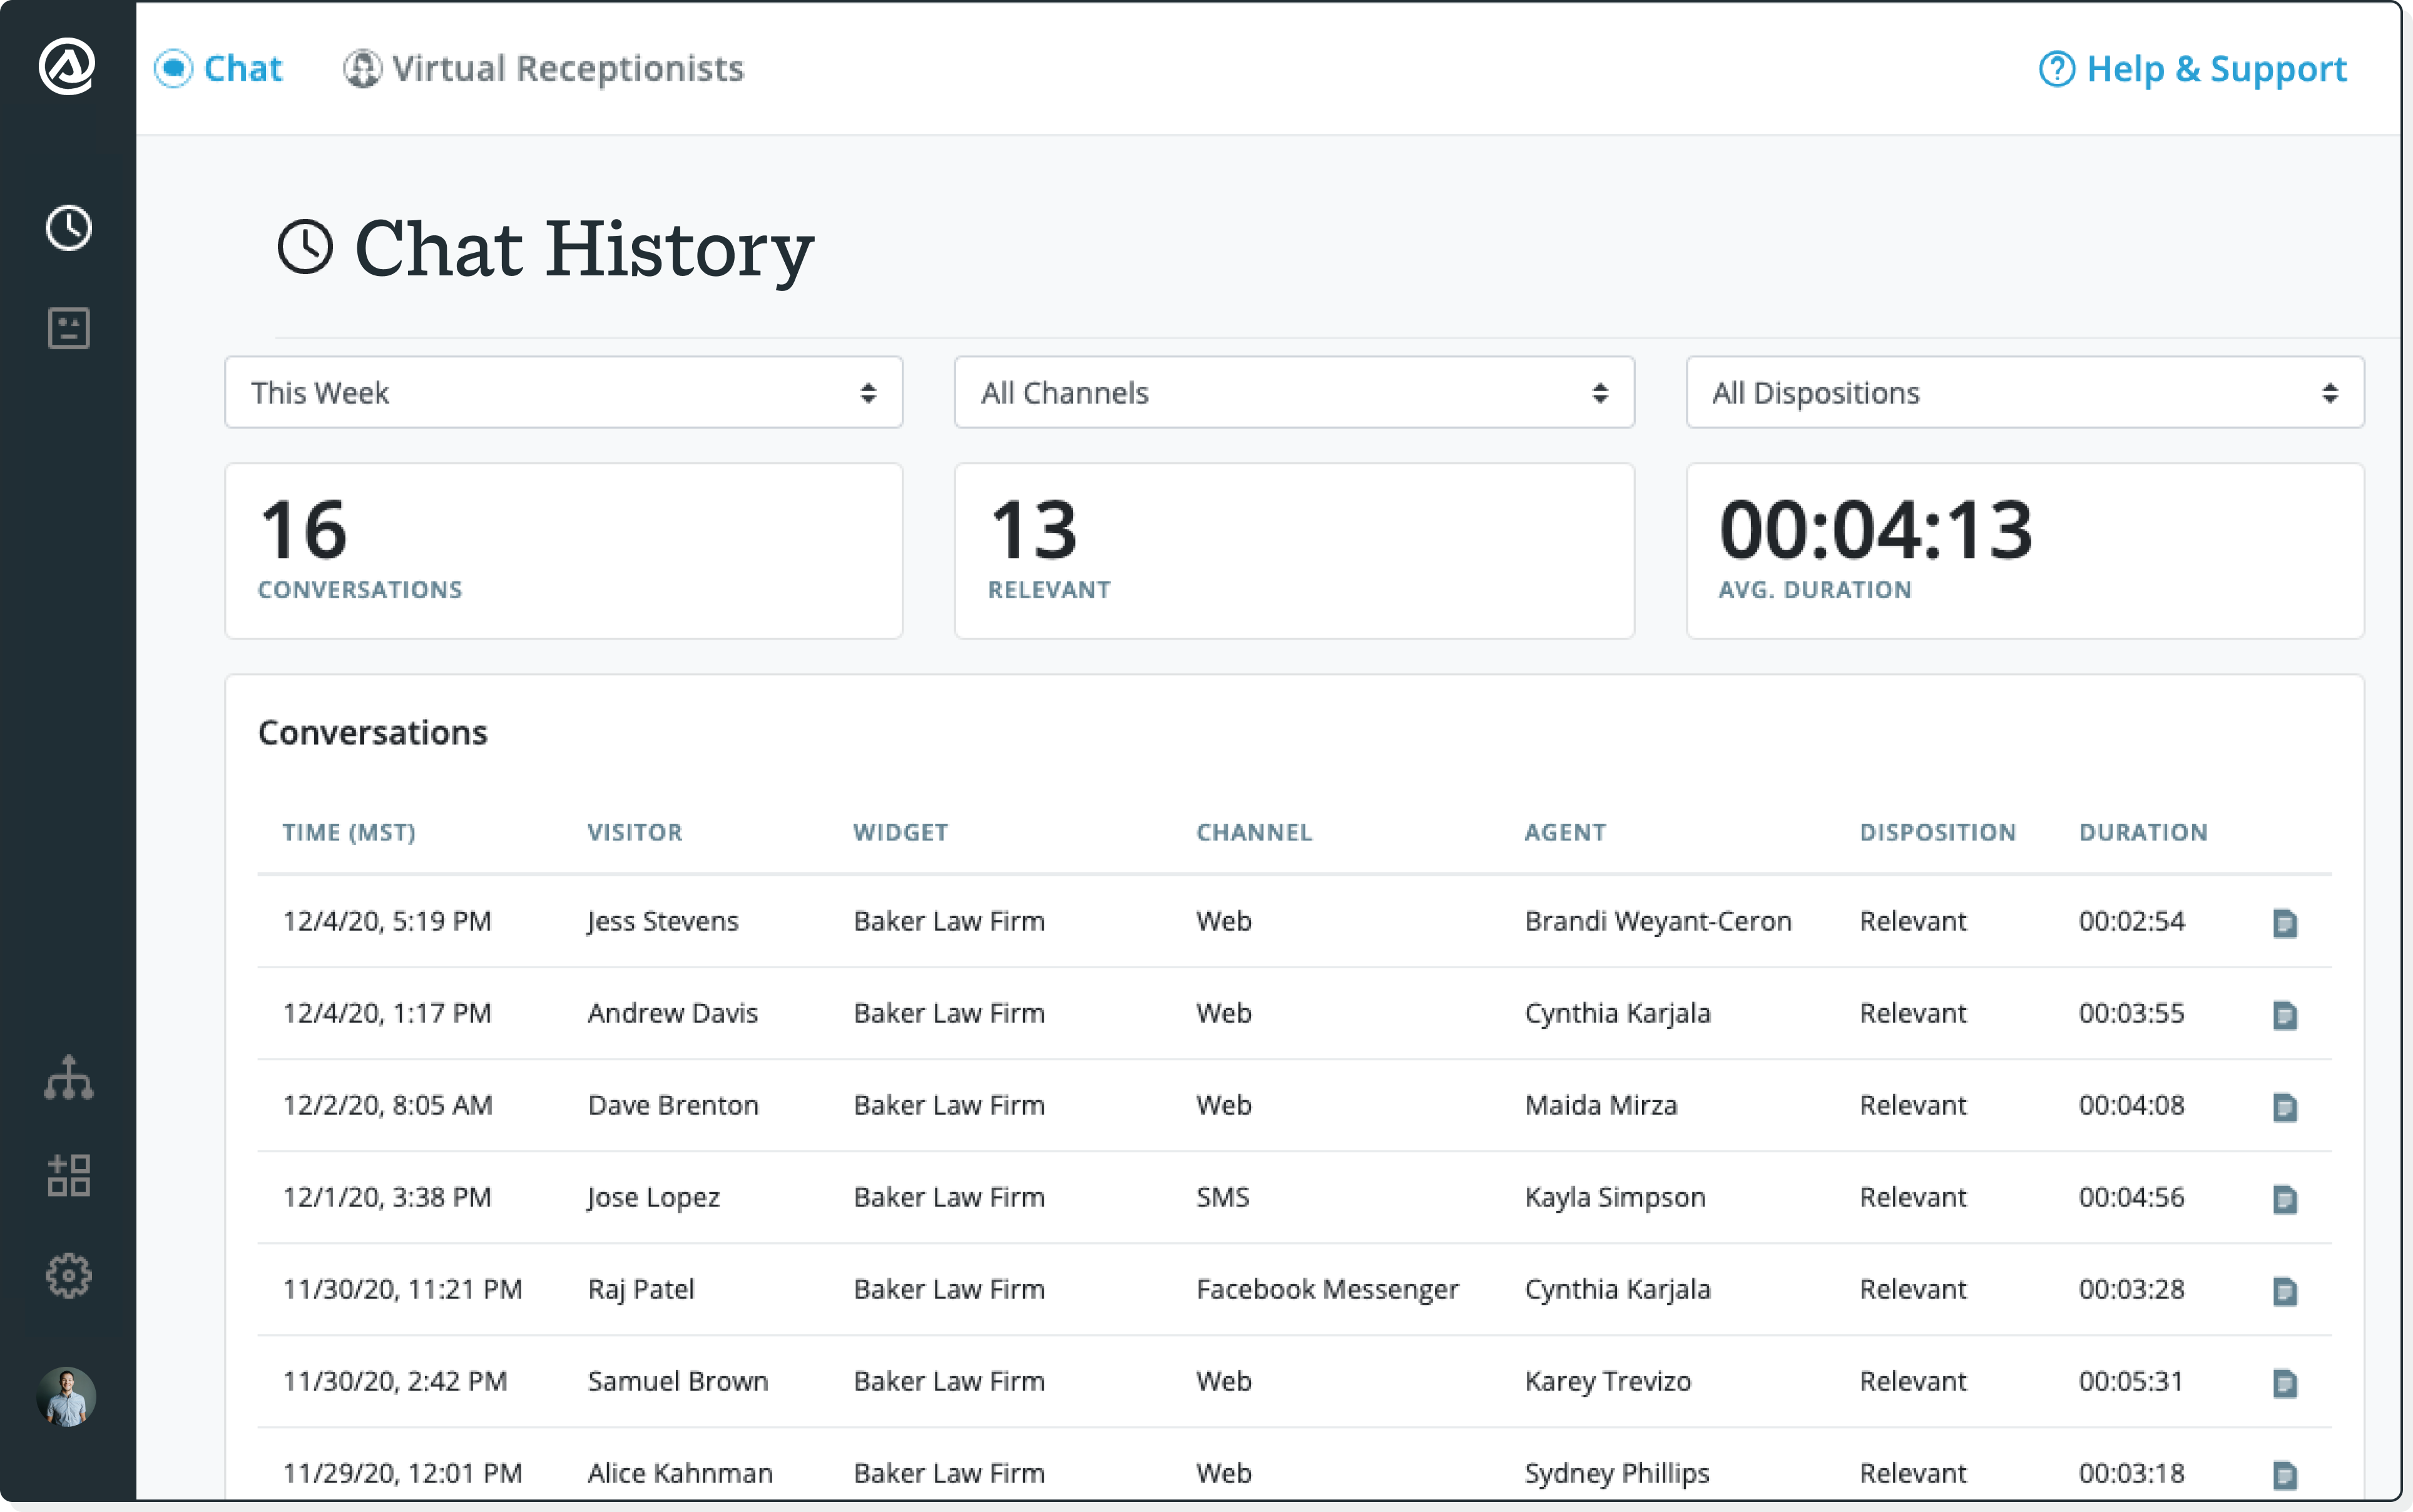 The Smith.ai Chat Dashboard with chats listed and data including conversations, relevant leads, average duration, name widget, channel, date, and disposition of each chat.